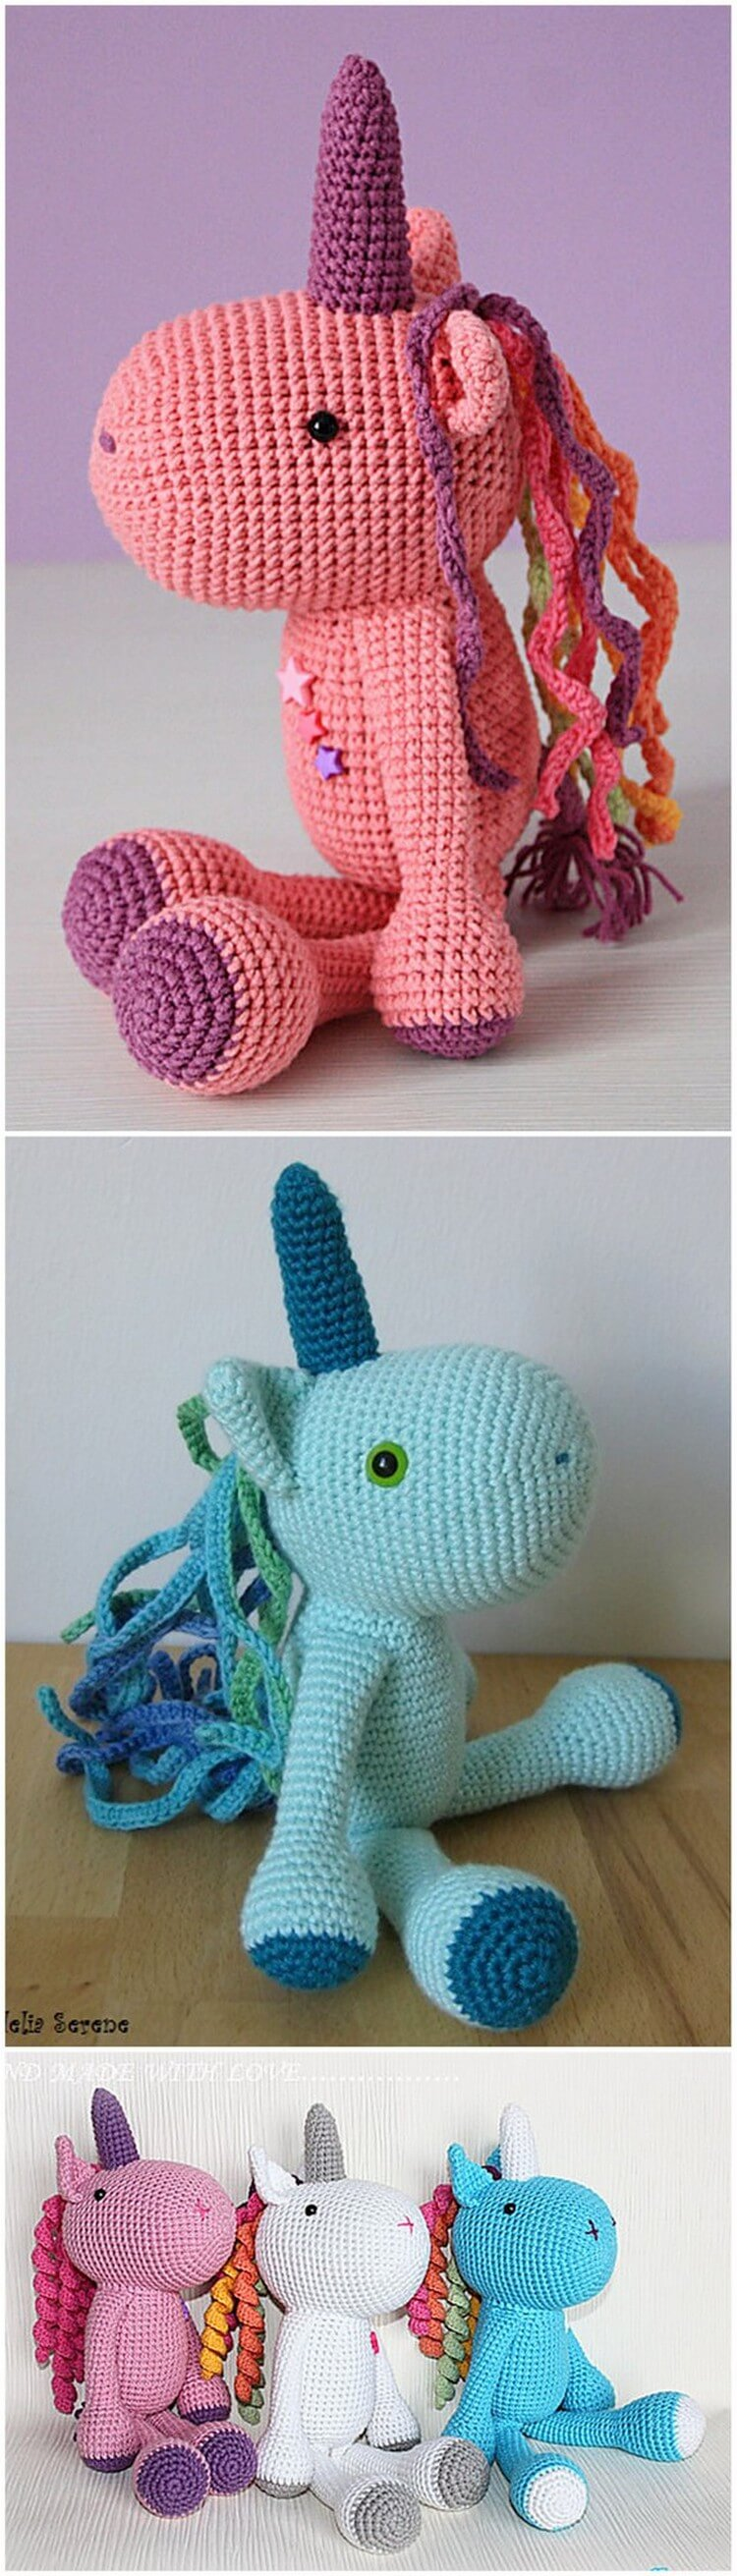 Crochet Unicorn Pattern (13)